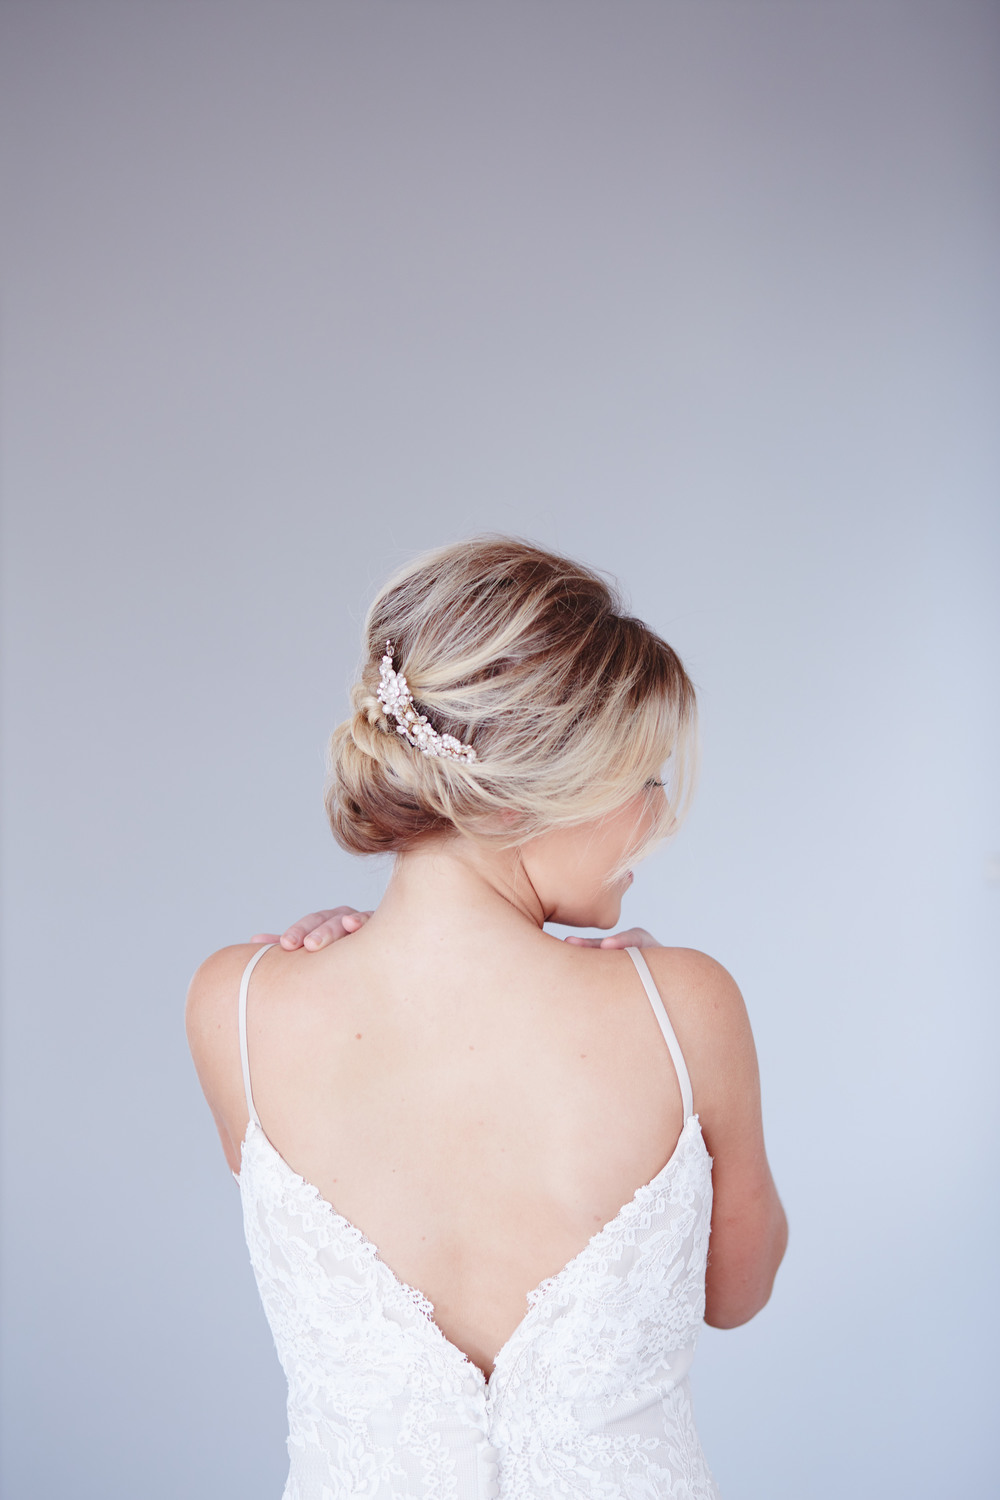 Styled_Session_Becca_Bridal_Portraits_Sarah_Tau_Photography_HOB_Studio_285 26.jpg